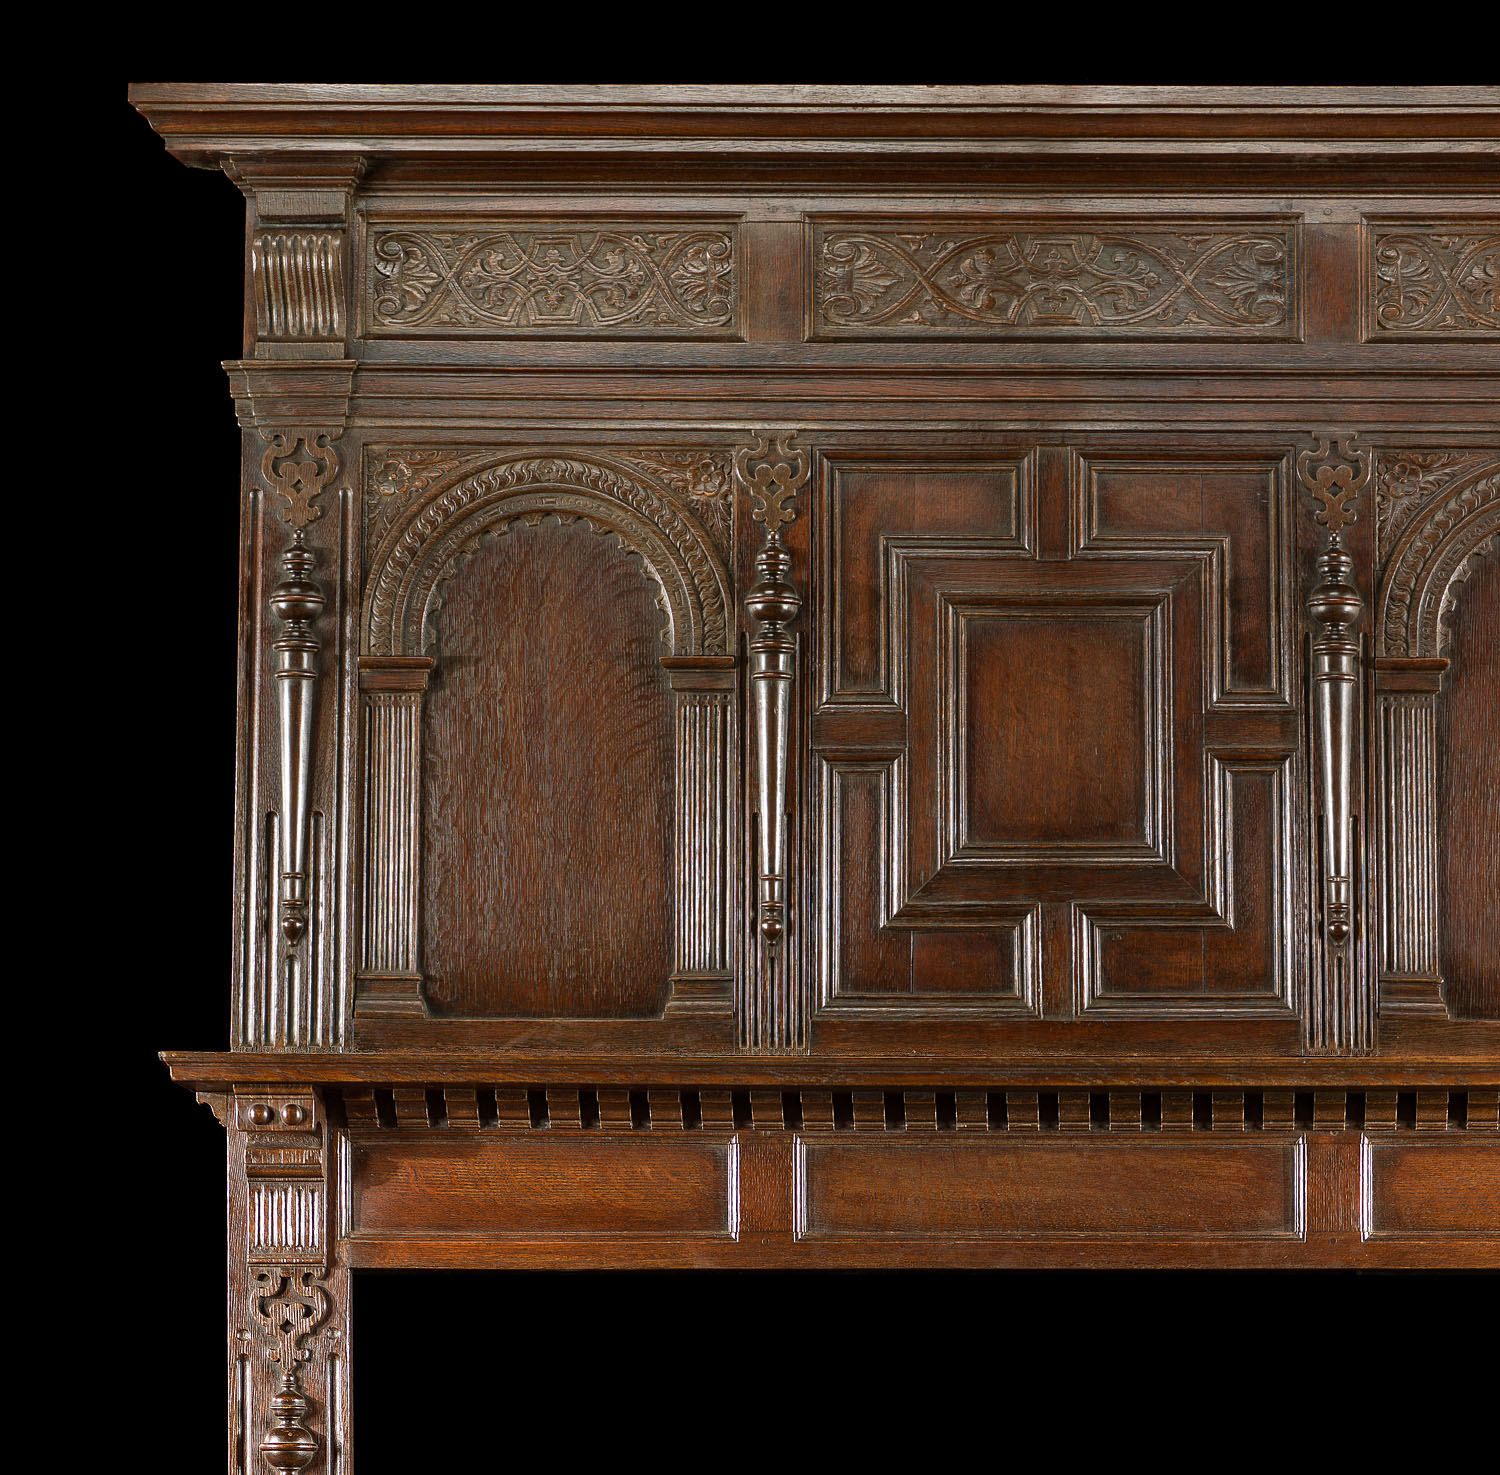 A 19th century carved oak Jacobean style Fireplace Mantel